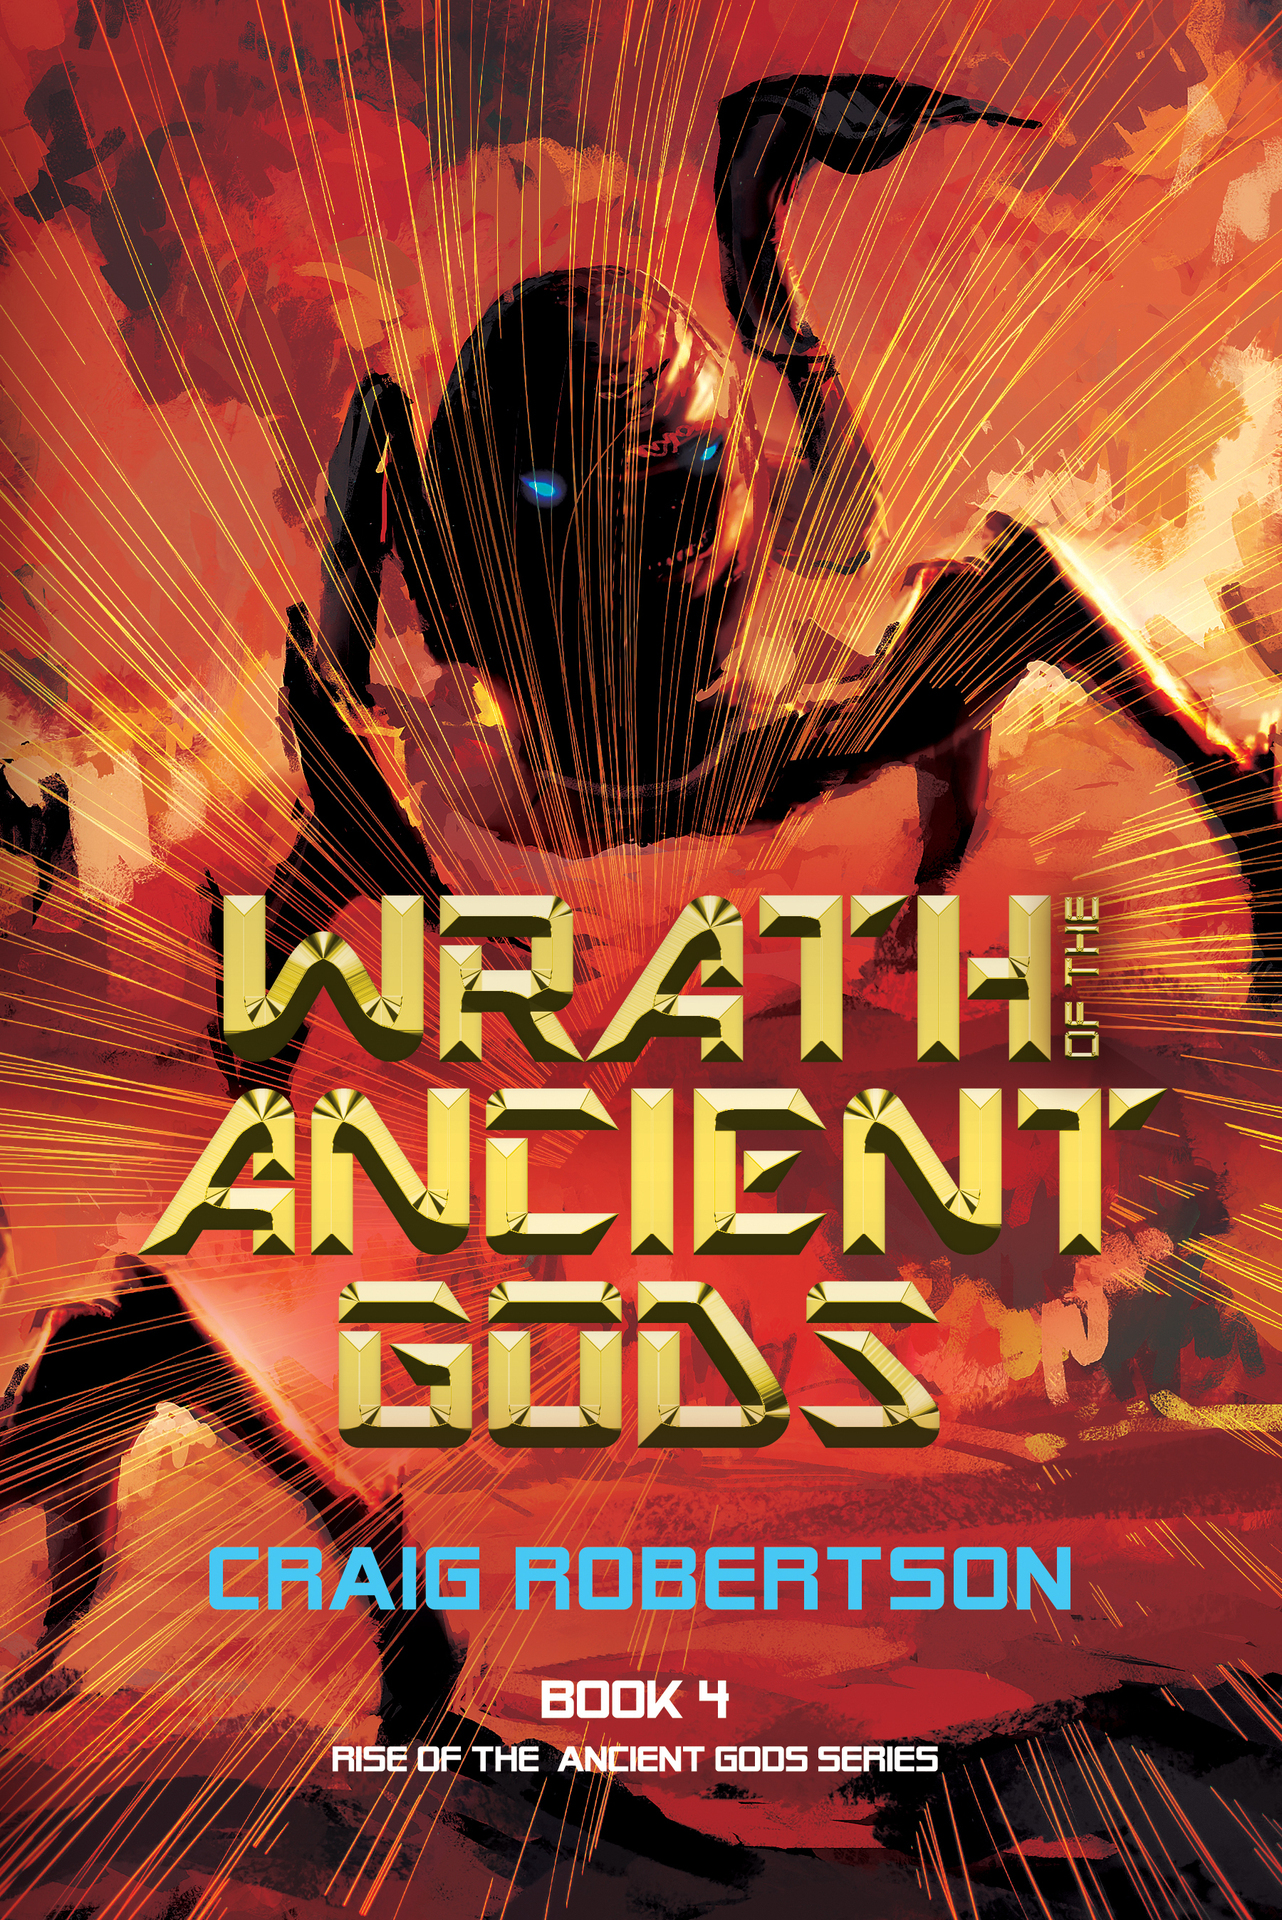 Wrath of the Ancient Gods